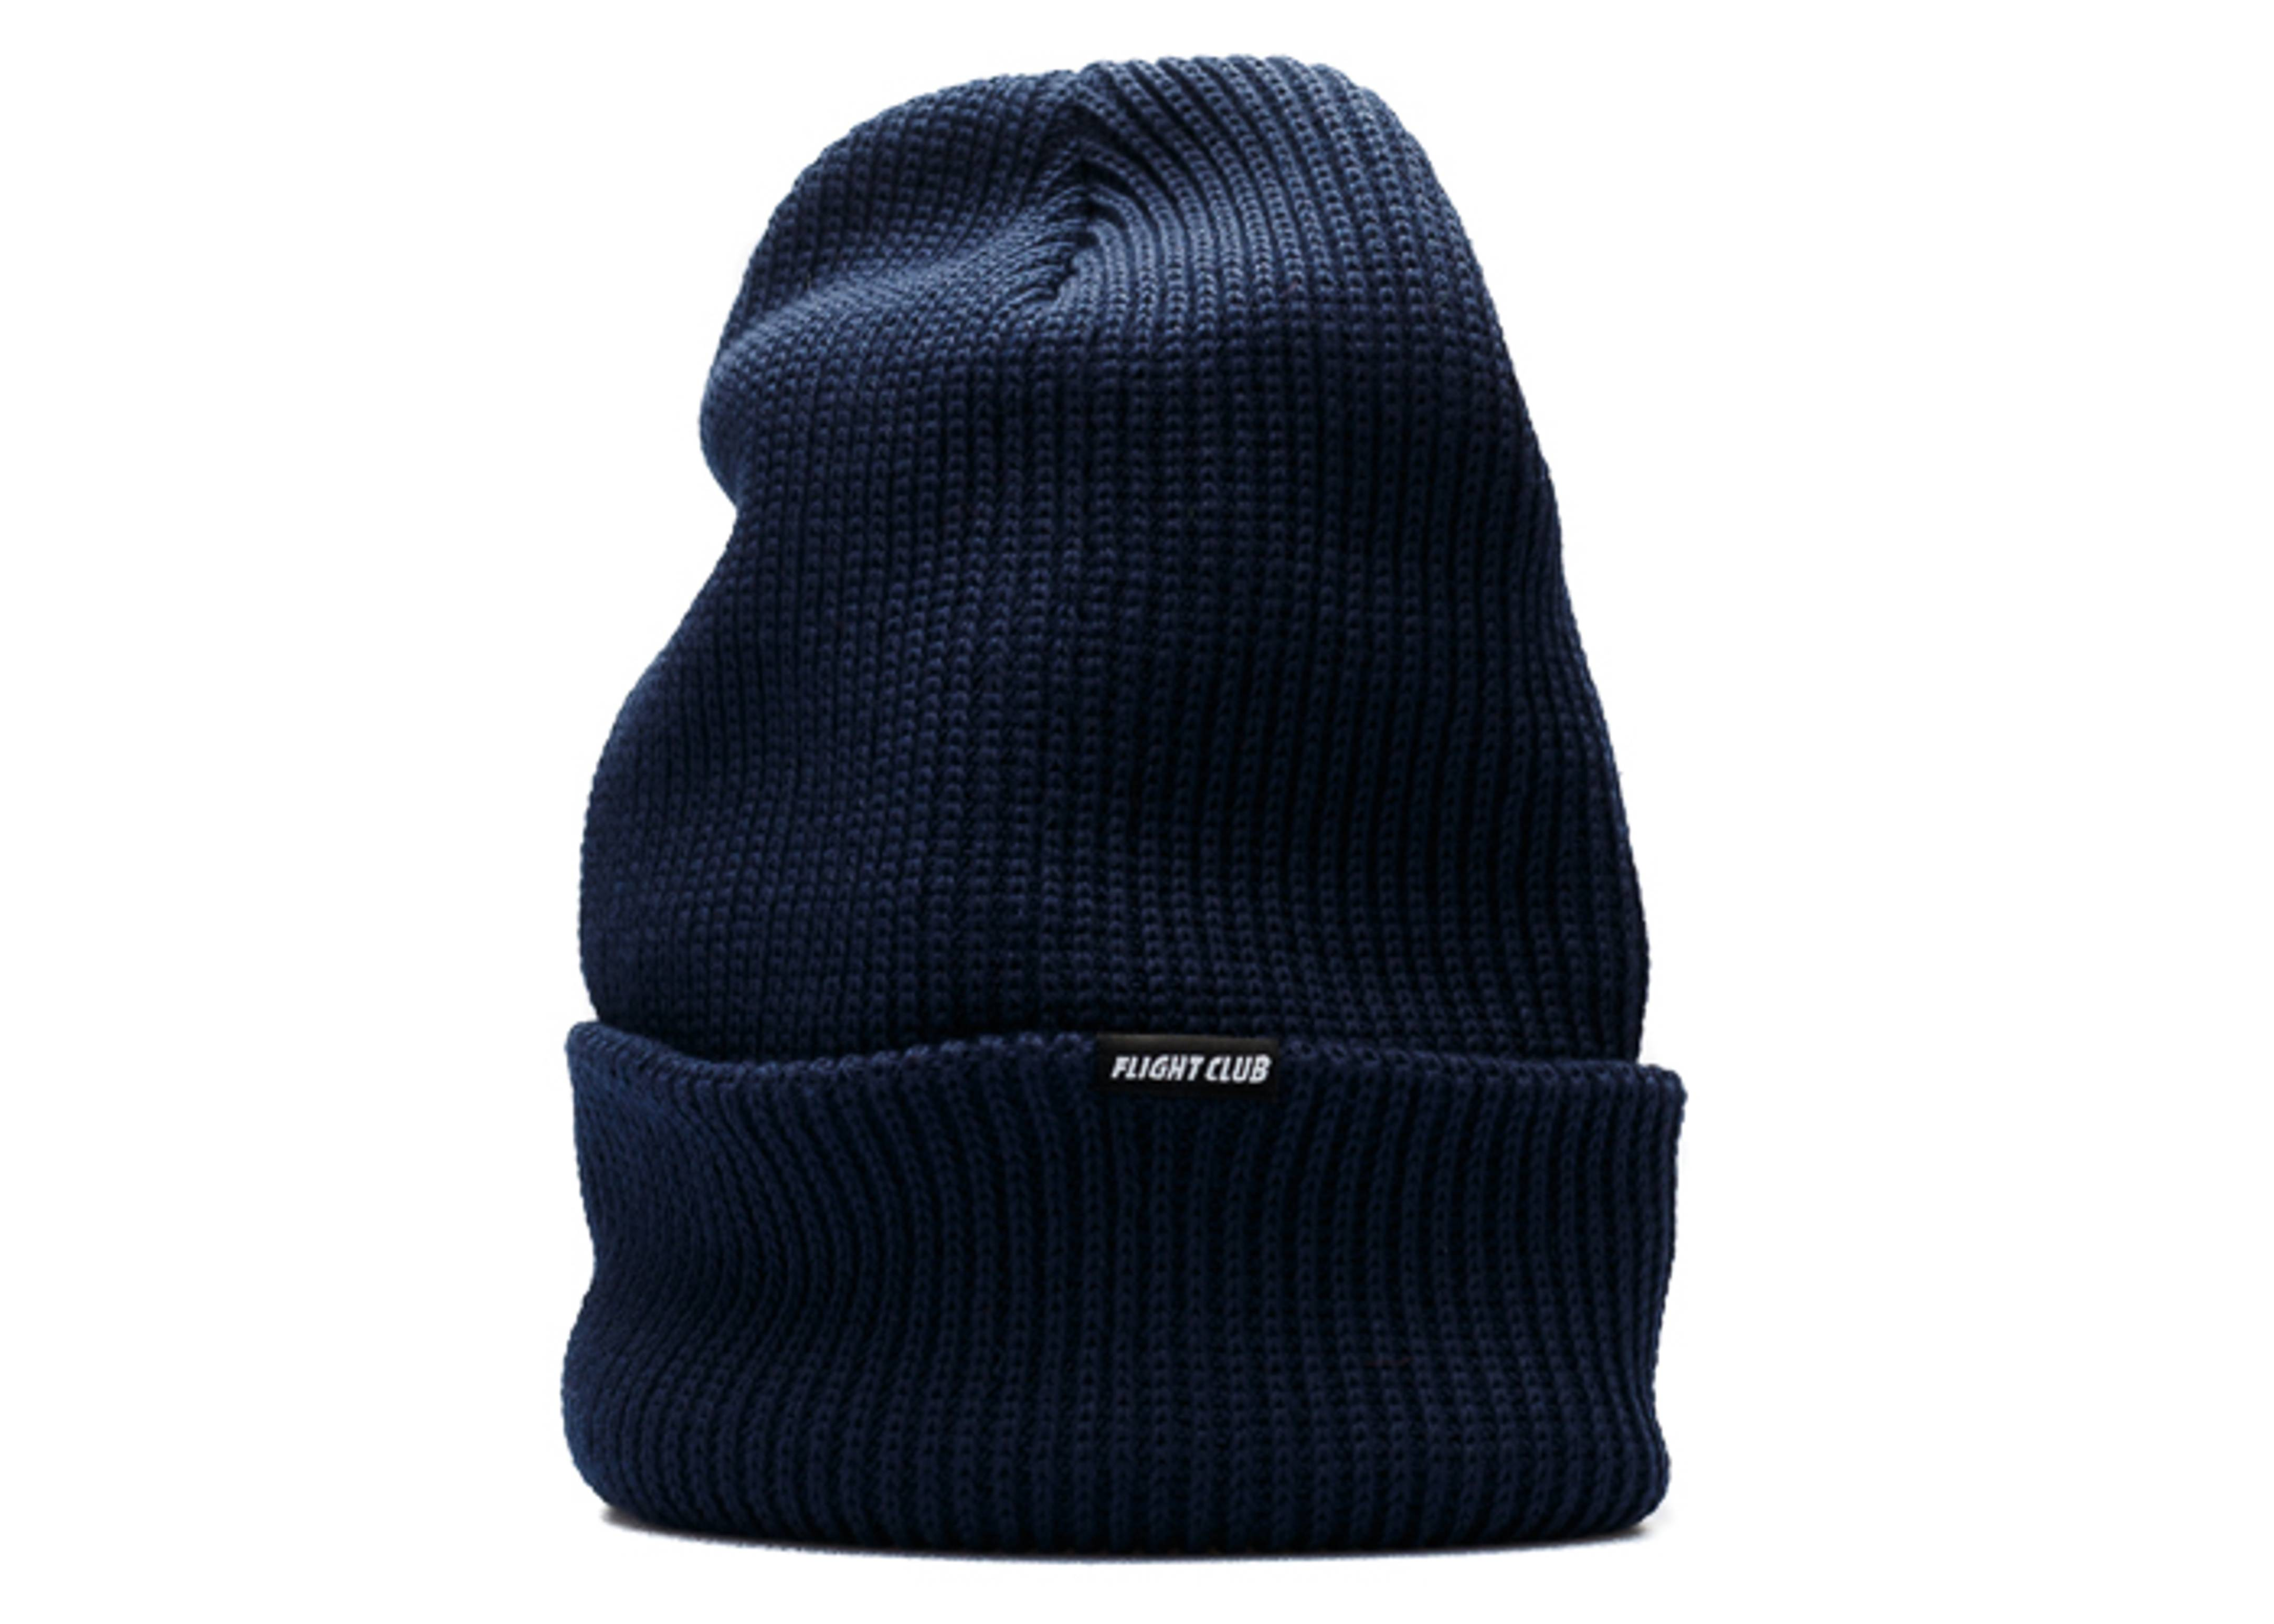 black tab cuffed knit beanie